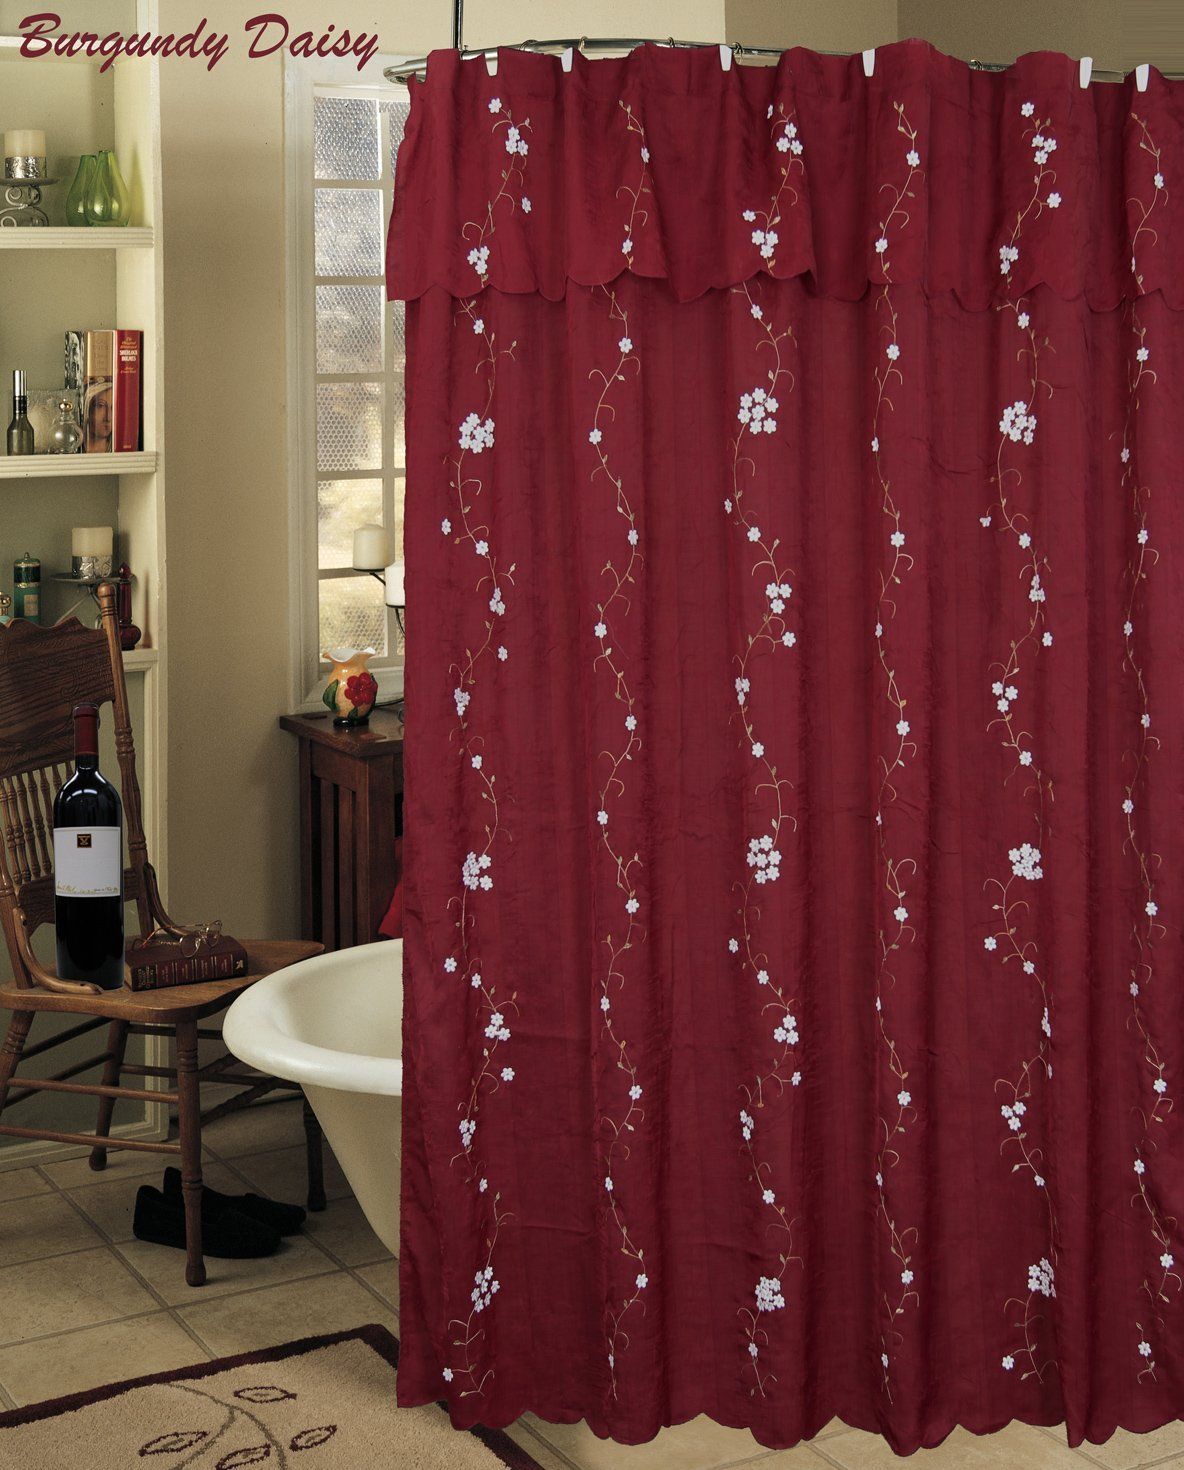 Buy Daisy Embroidered Floral Fabric Shower Curtain Burgundy